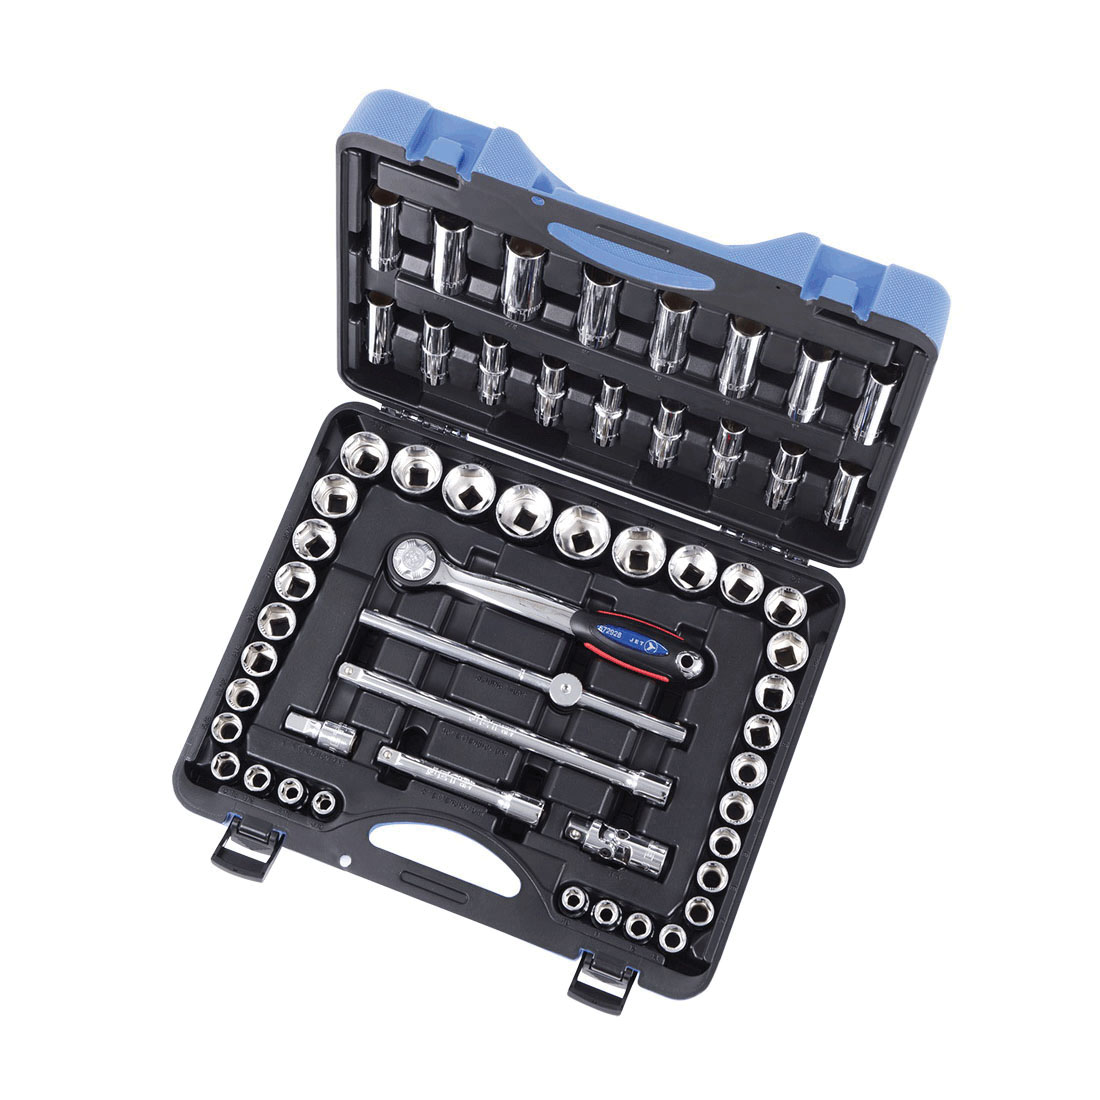 JET 600341 Socket Wrench Set, ANSI Specified, Canadian Government Specification CDA39-GP-12b, US Federal Specification GGG-W-641E, Imperial/Metric, 6 Points, 1/2 in Drive, 55 Pieces, Blow Mold Case with Removable Lid Container